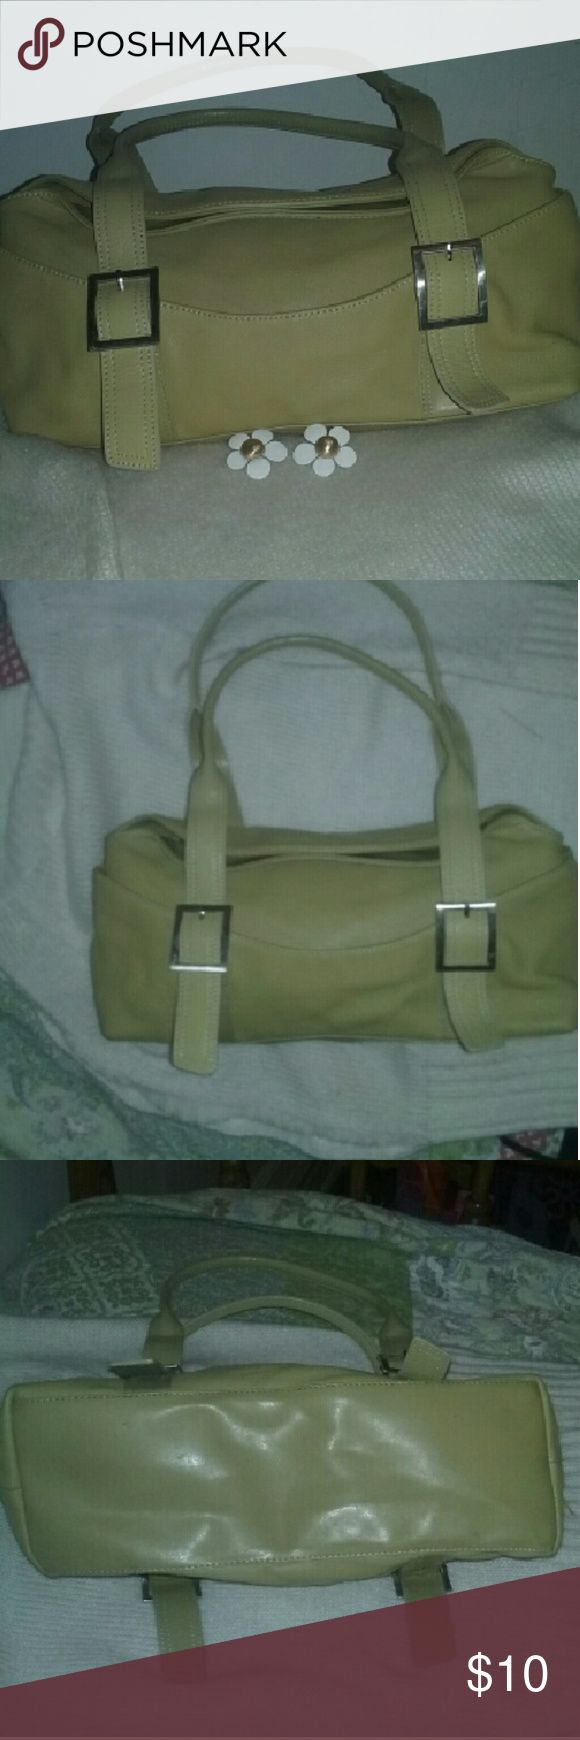 """Kenneth Cole Genuine  Leather Shoulder bag This bag is in good condition and is so cute if you just want something simple yet classy.  It's 14"""" long by 6"""" high so you got some room with this bag. It's got a zip pocket on the inside with two side compartments on the outside. Does have some pen marks on the inside lining but not to many and they are pretty little. Refer to the last photo to see what I mean. Kenneth Cole Bags Shoulder Bags"""